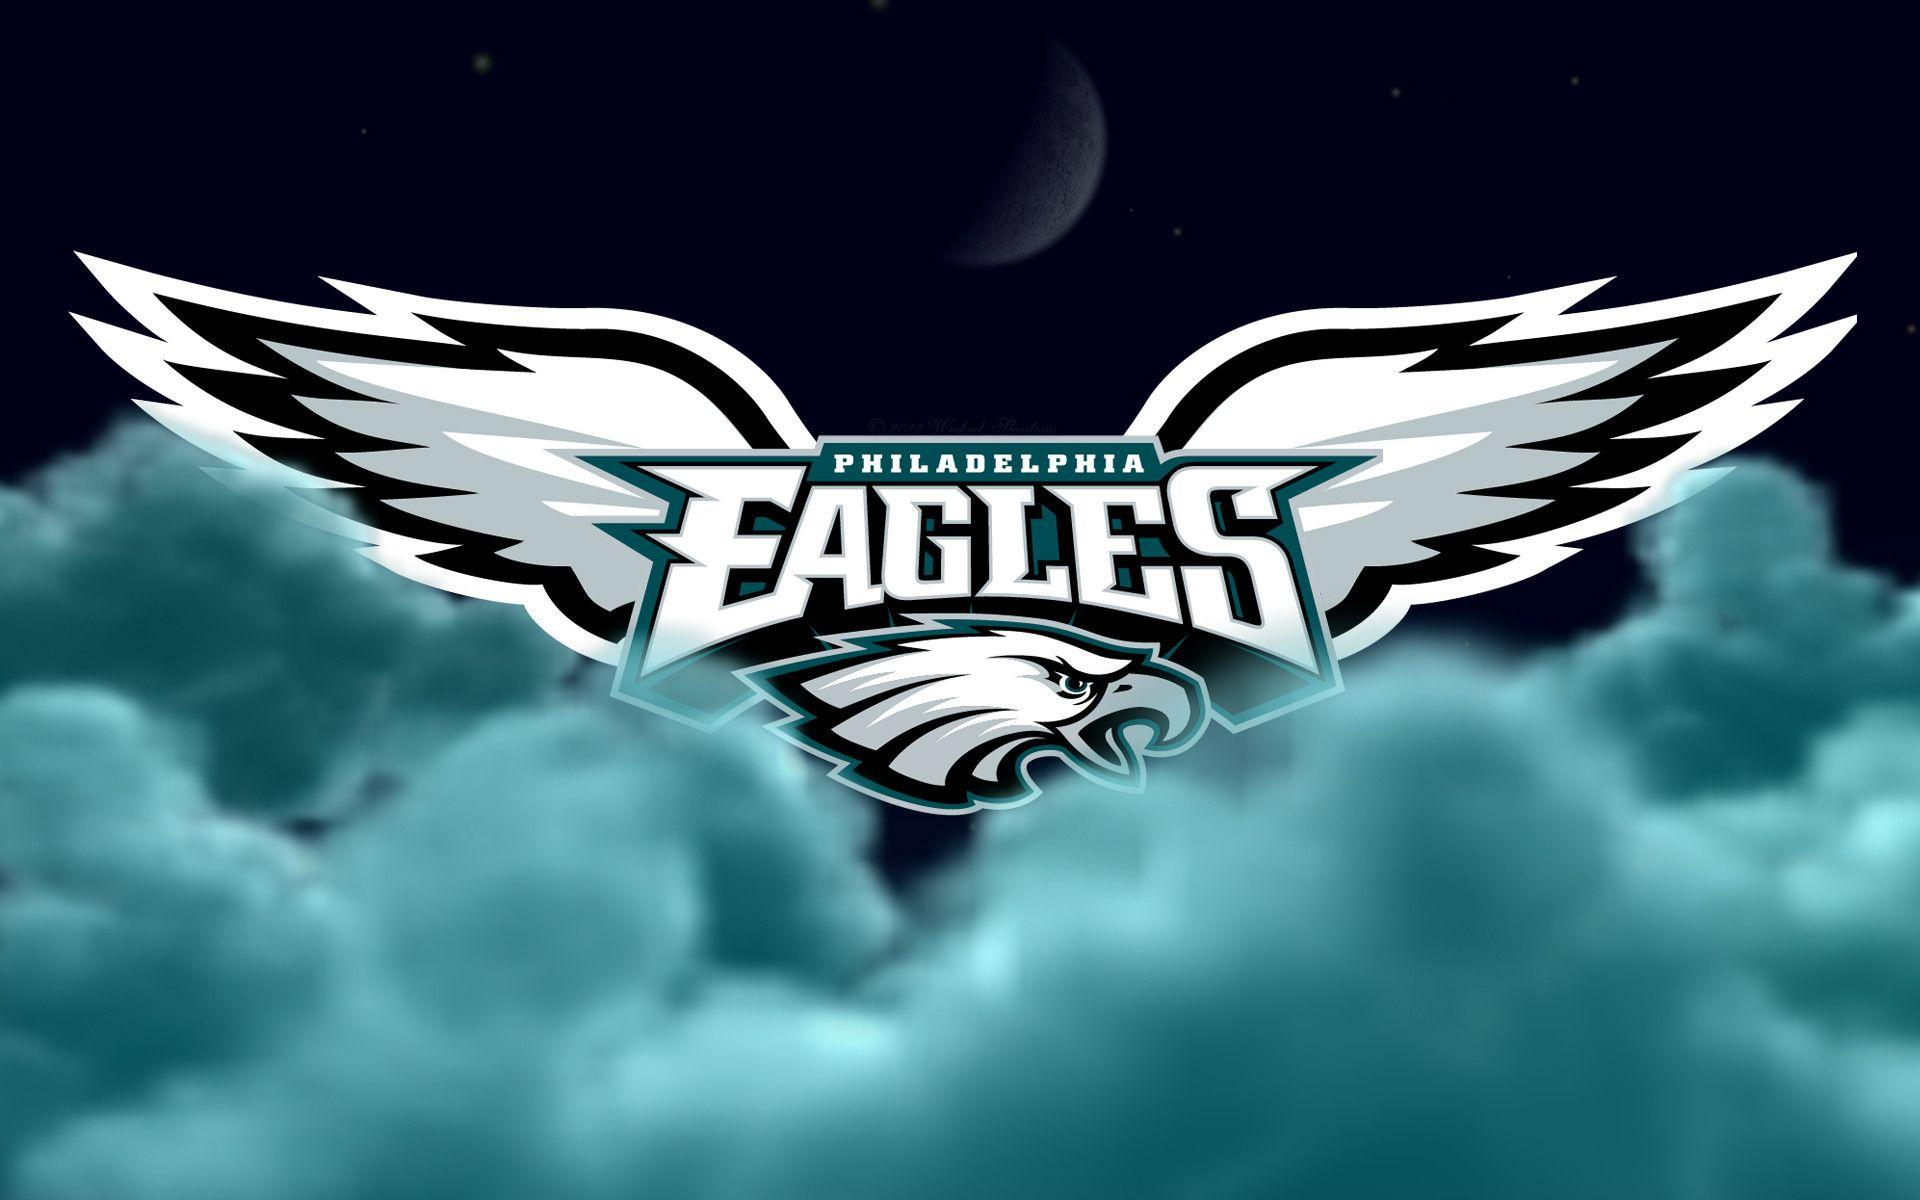 97 Philadelphia Eagles Super Bowl Champions Wallpapers On